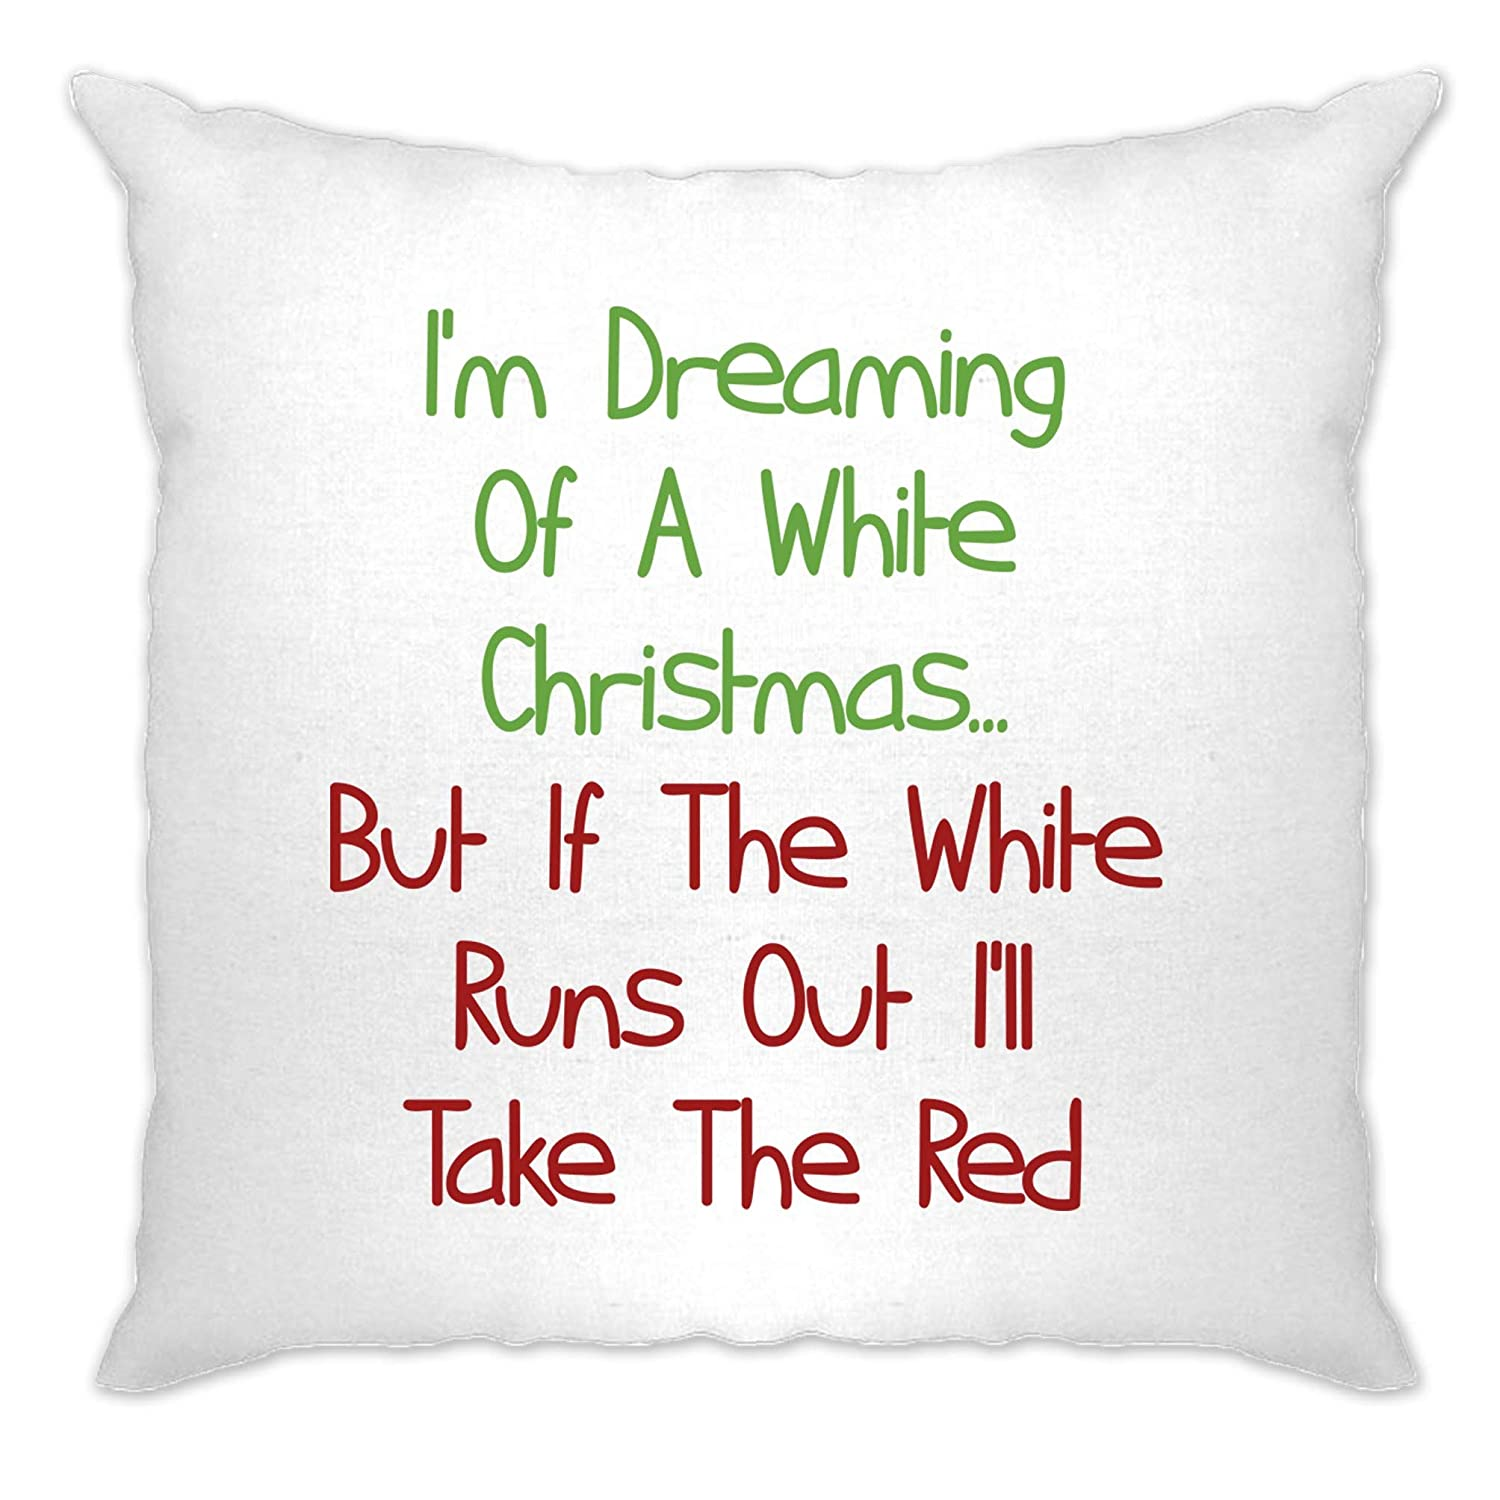 Christmas Cushion Cover Sofa Home Dreaming Of A White Xmas Ill Take The Red Wine Silly Alcohol Drunk Joke Festive Season Cool Funny Gift Present